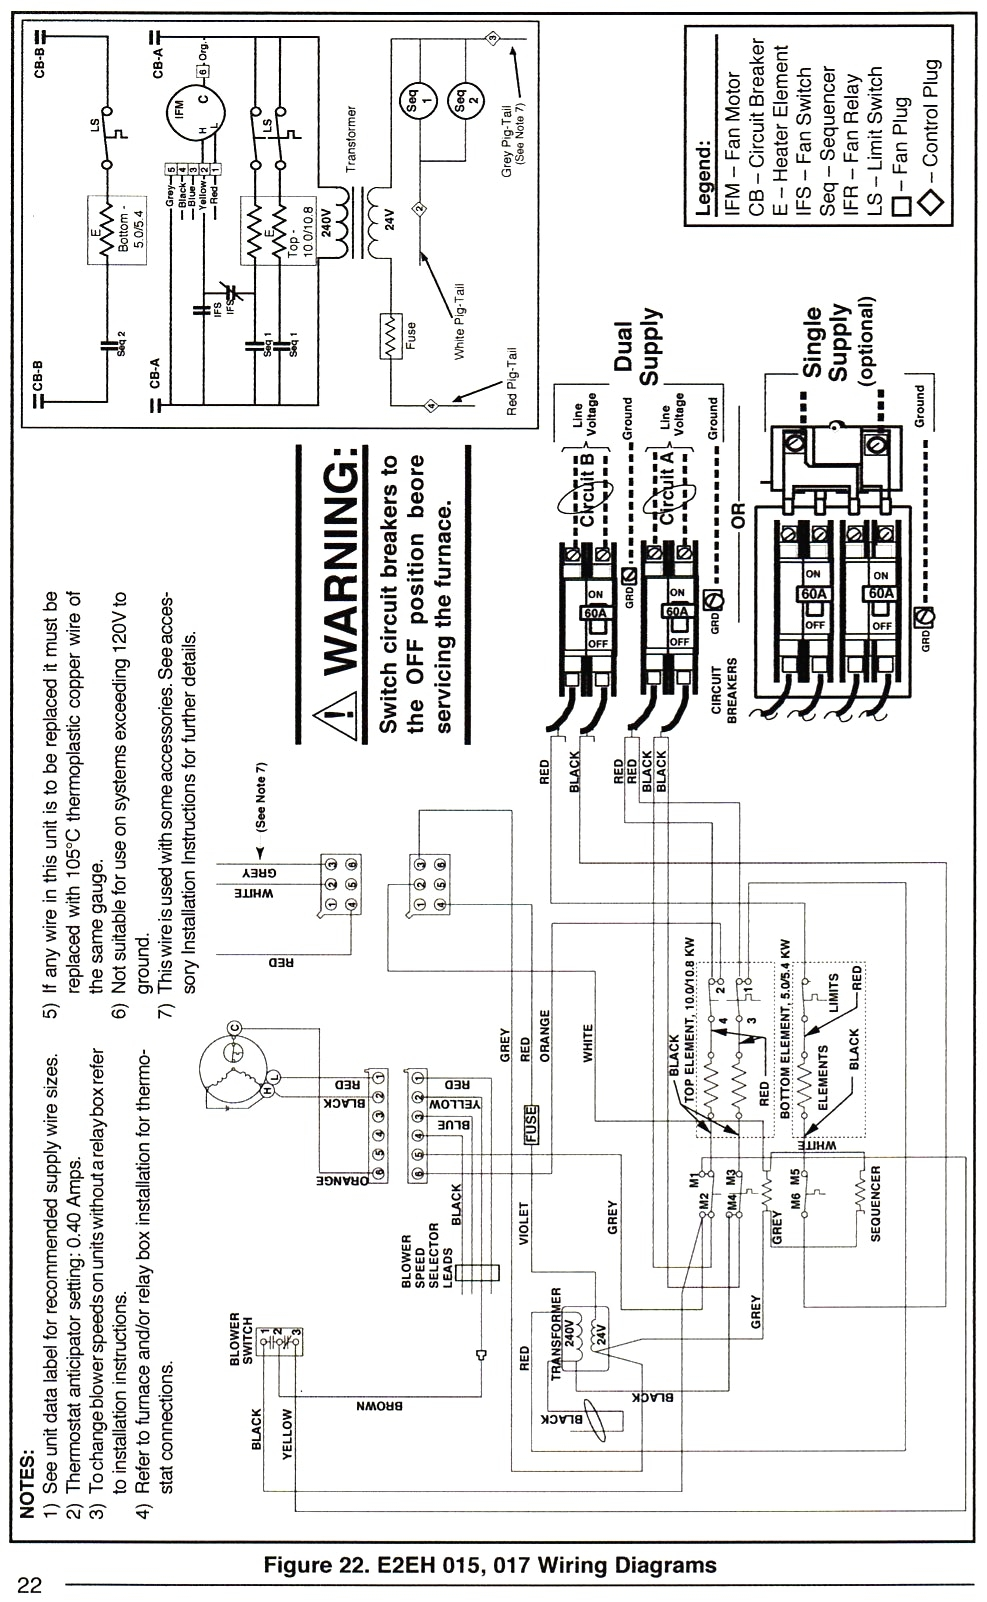 Nordyne Air Handler Wiring Diagram